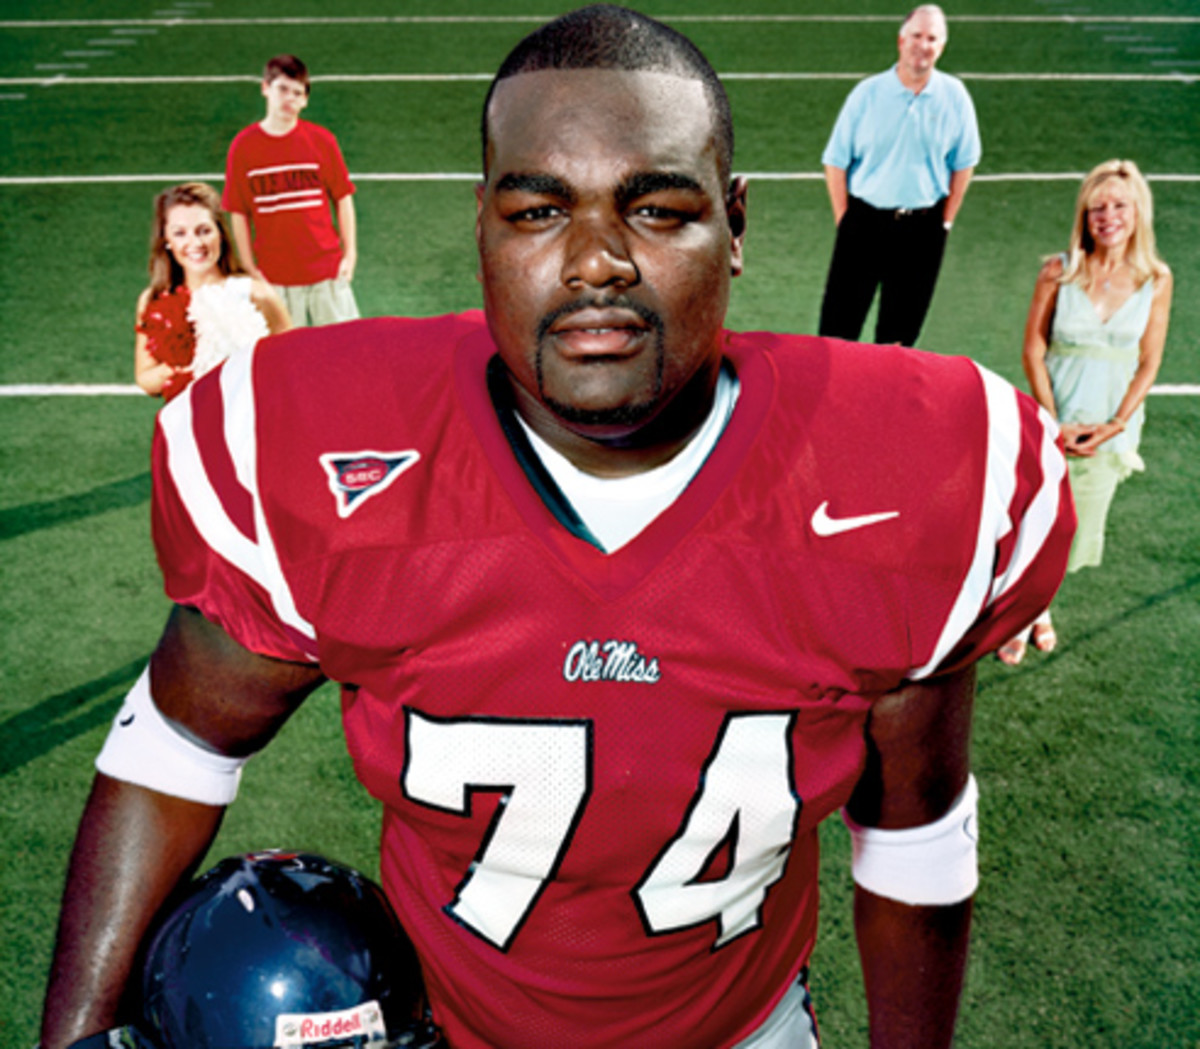 Michael is his Ole Miss (University of Mississippi) uniform